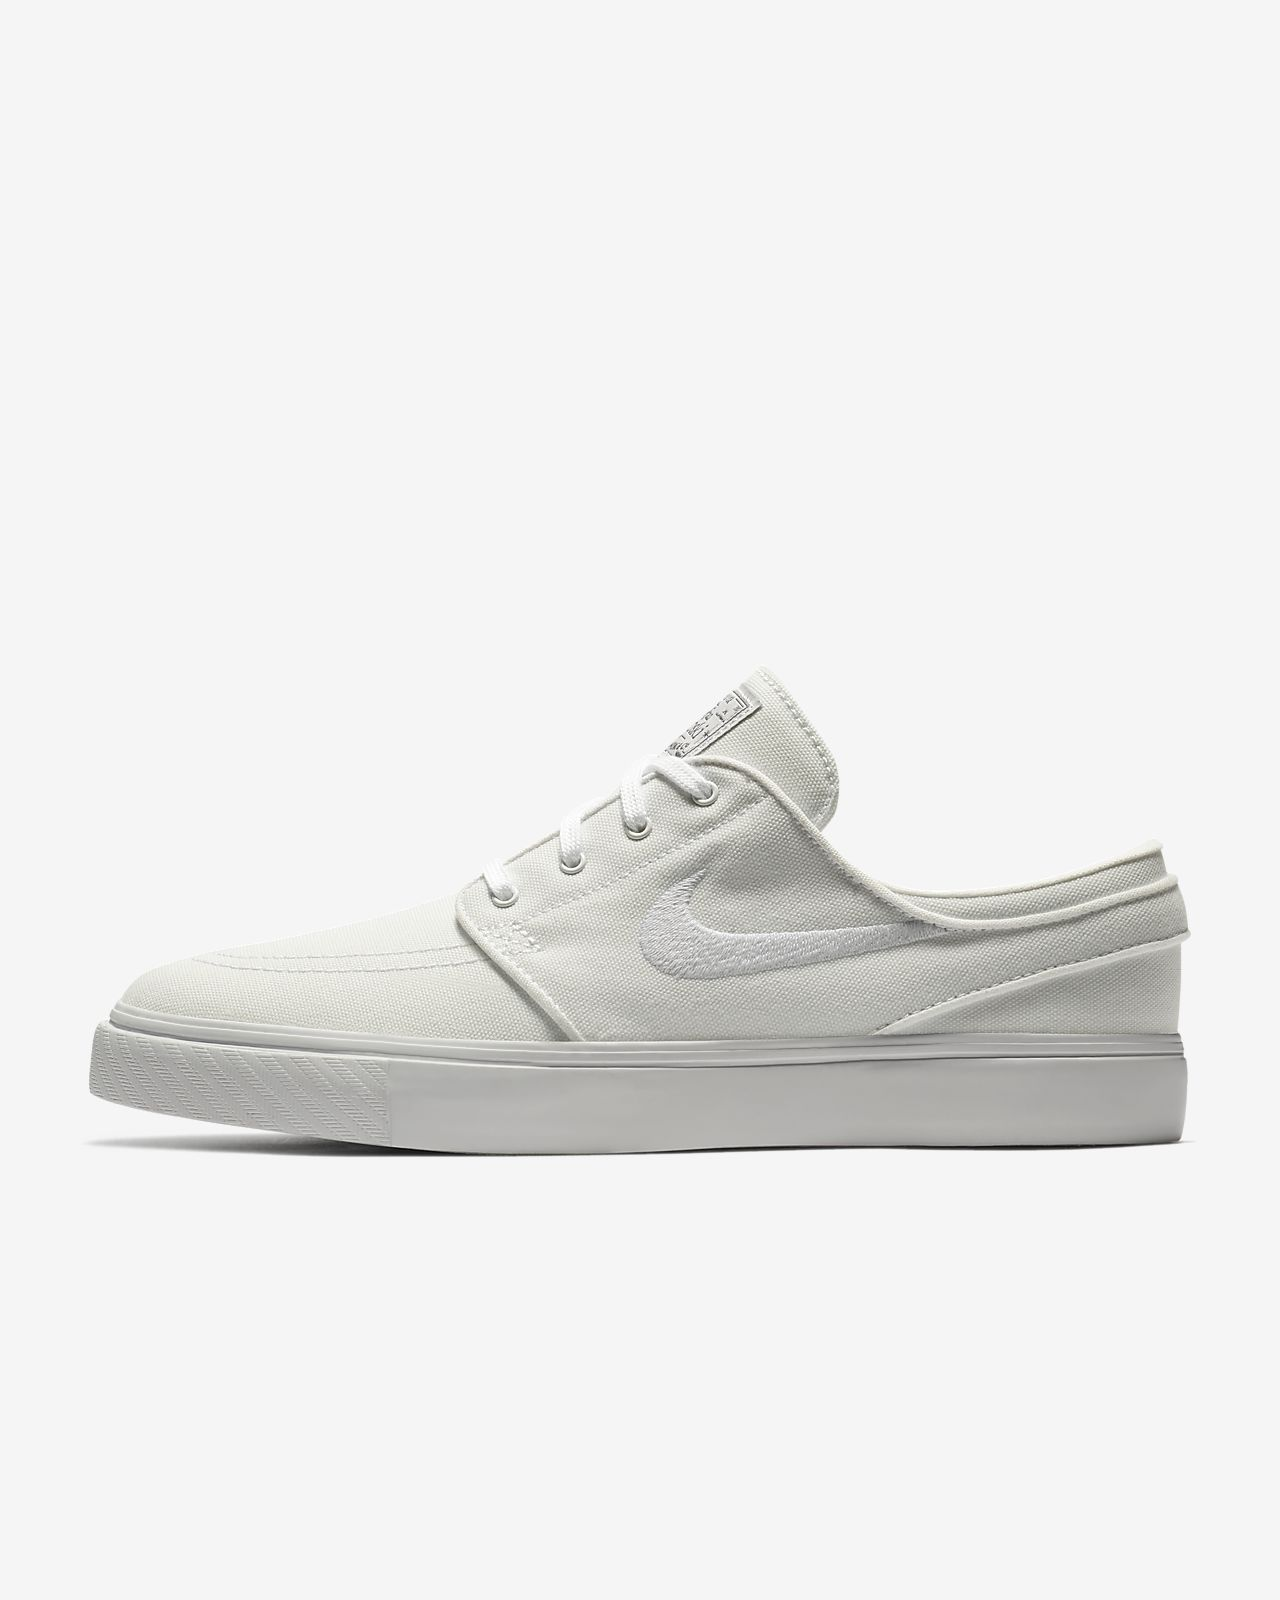 the latest 1d1b0 e031c Men s Skate Shoe. Nike SB Zoom Stefan Janoski Canvas